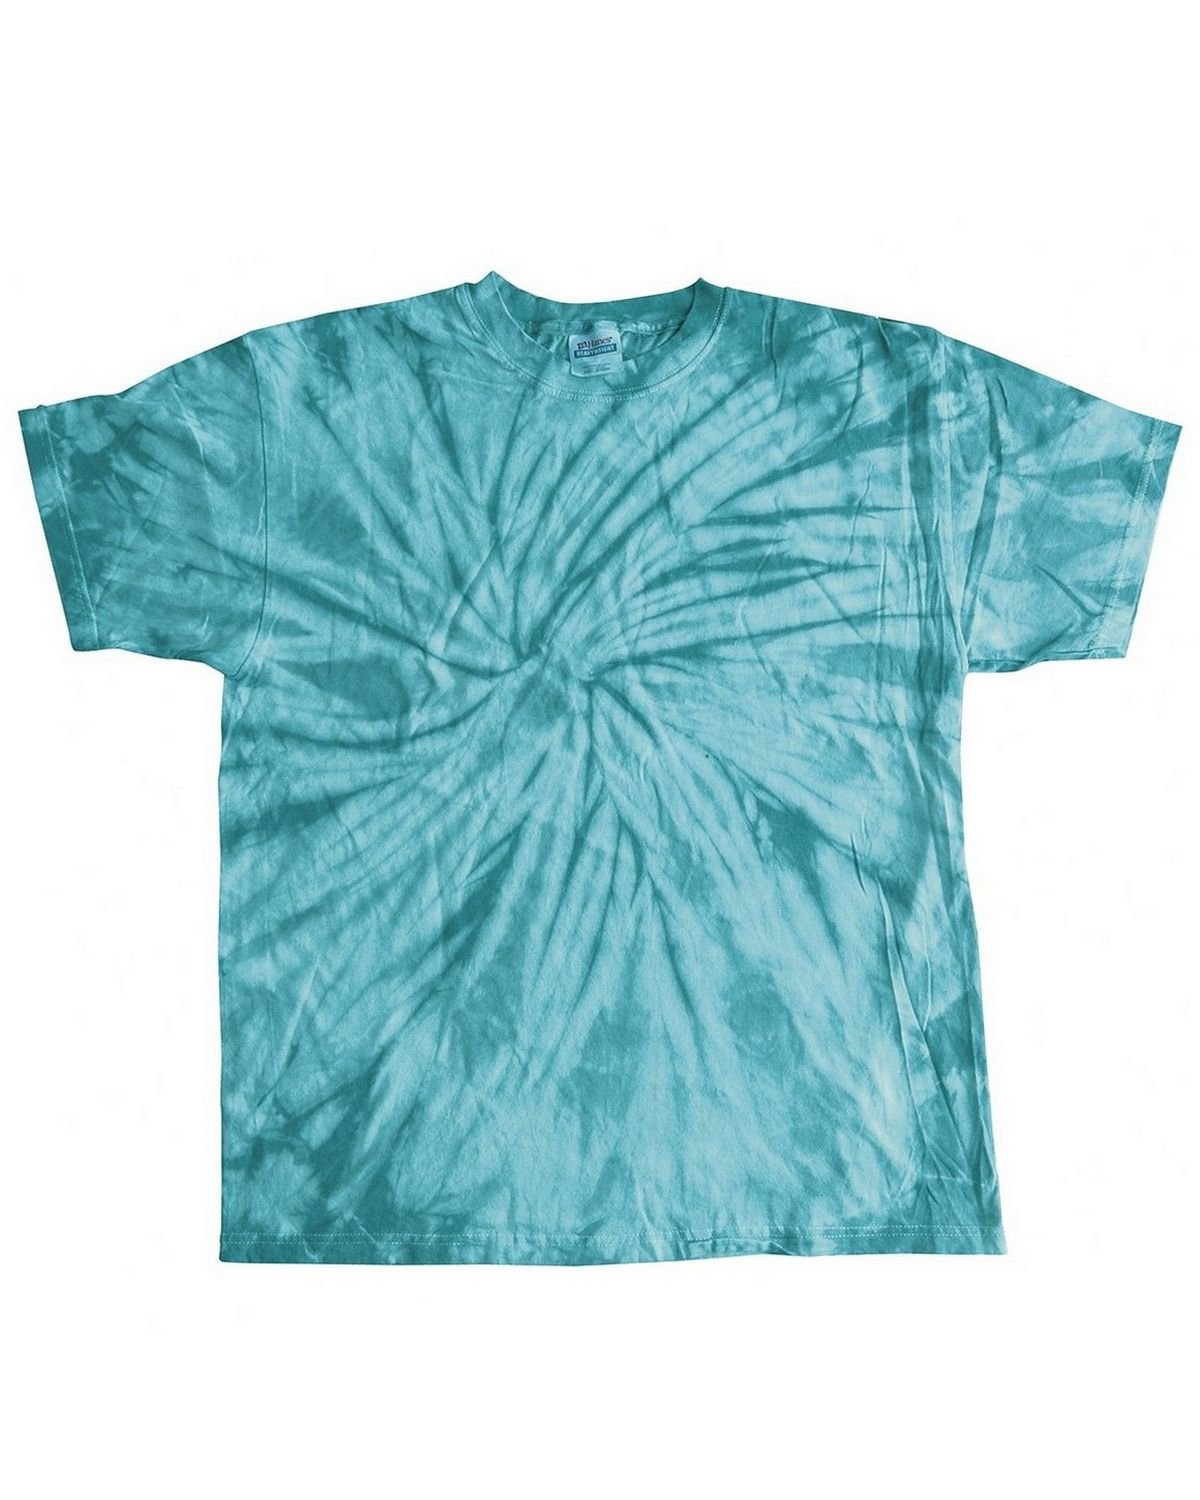 Kelly Large Colortone T1000Y Spider Tie Dye Youth Tee